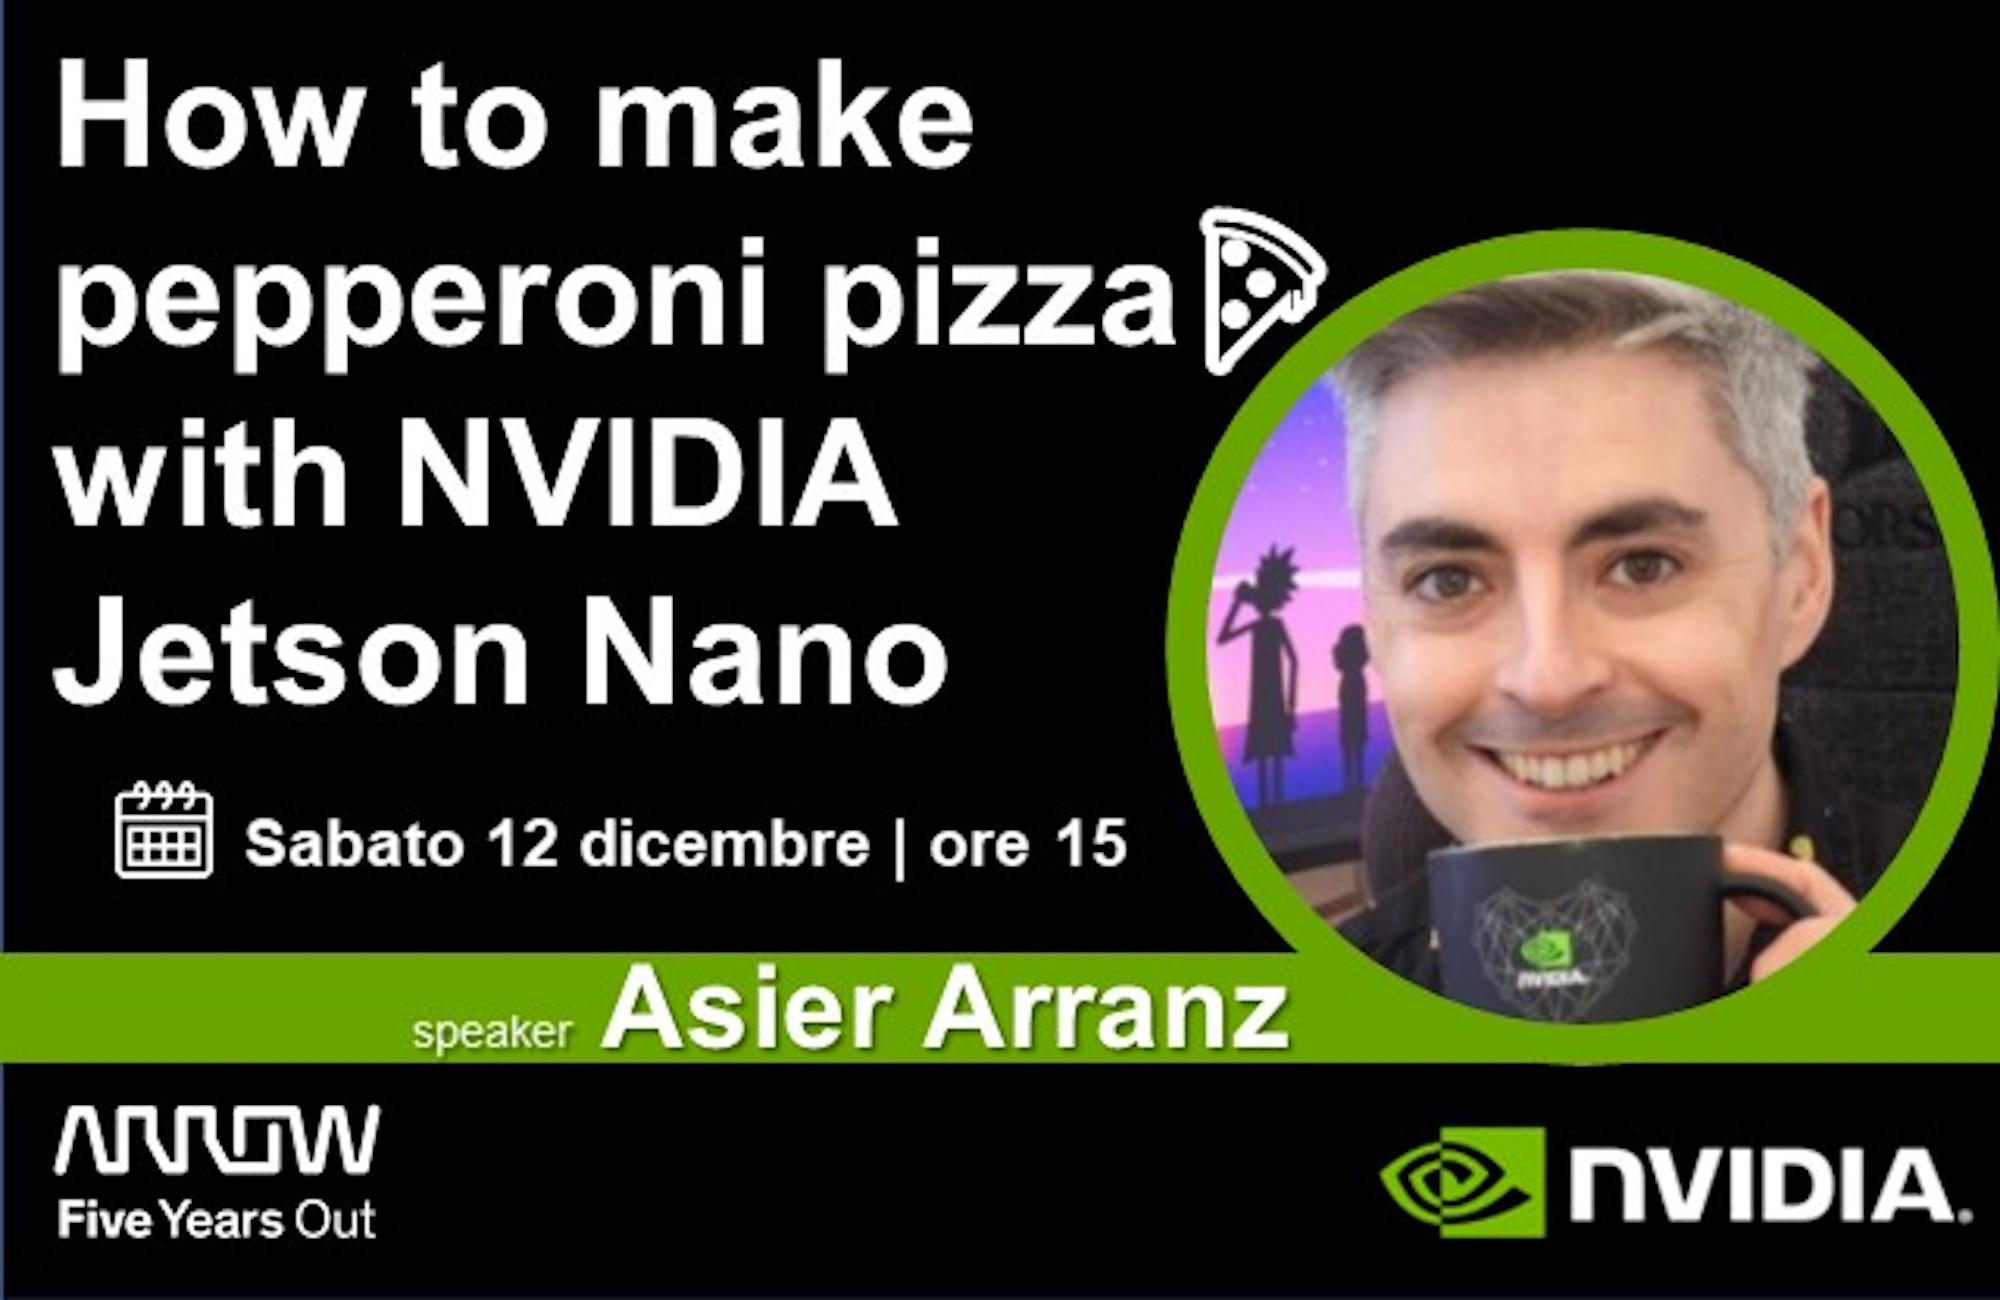 How to make pepperoni pizza 🍕 with NVIDIA Jetson Nano